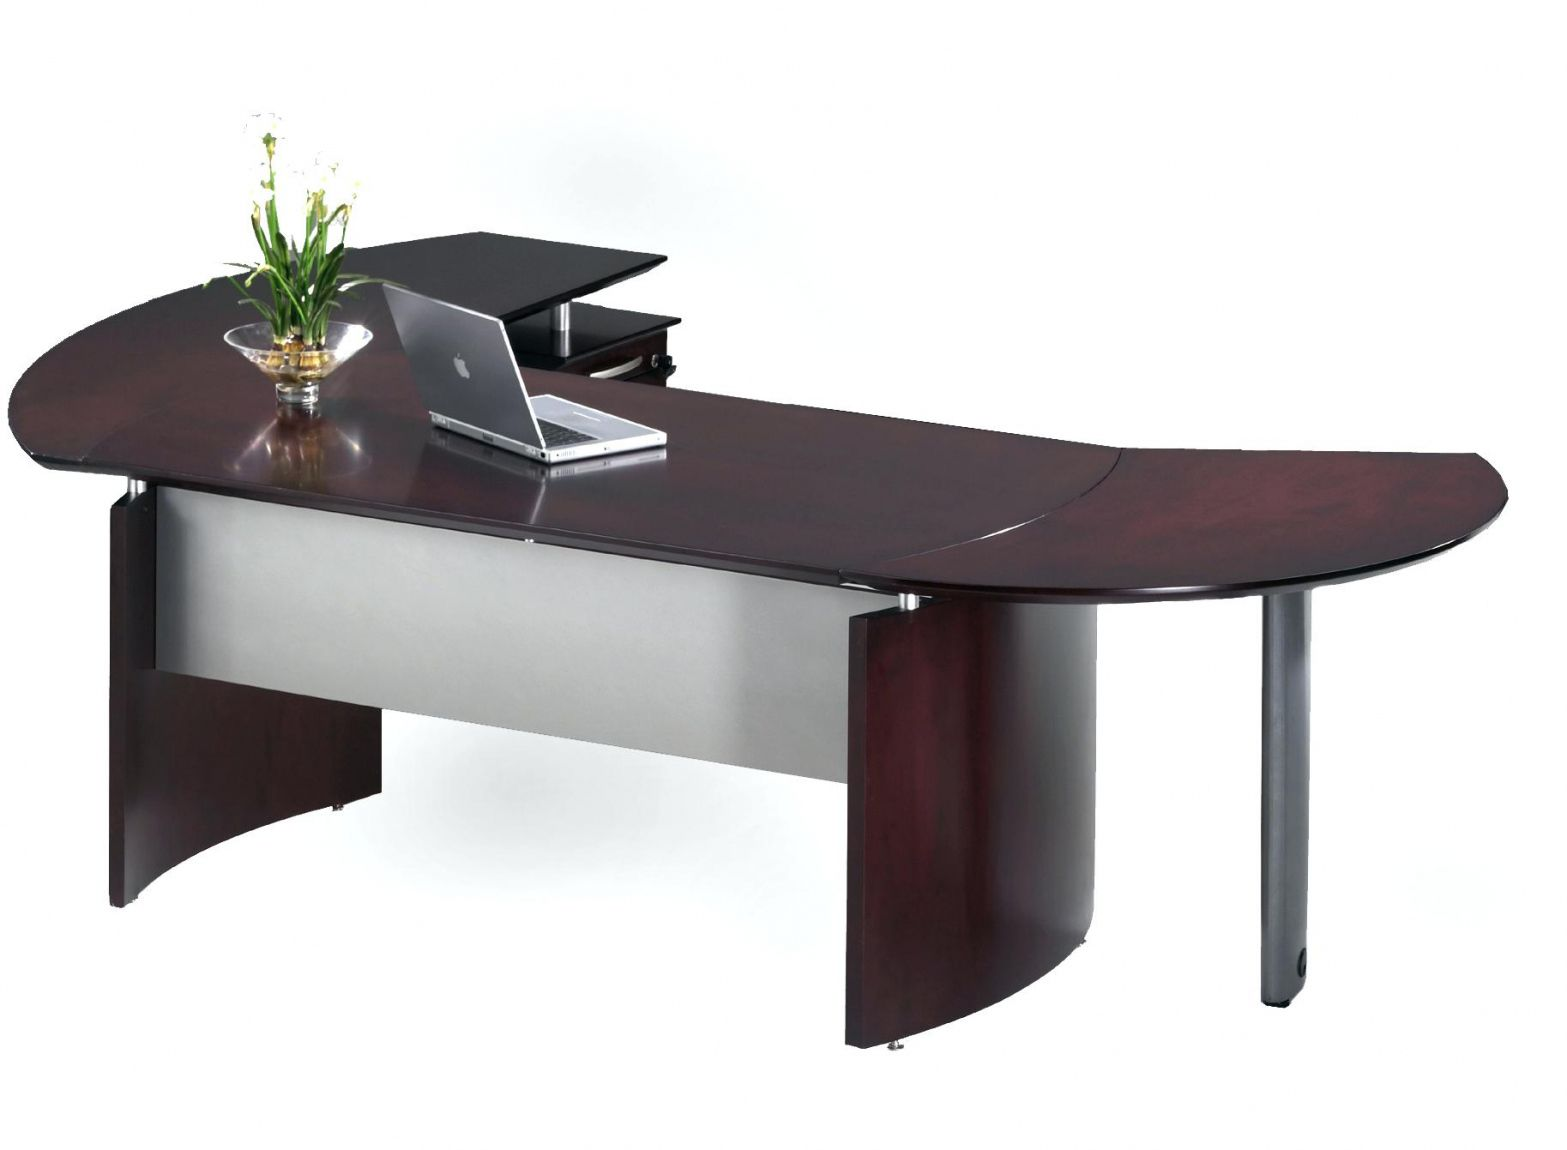 55 Circular Office Table Luxury Home Office Furniture Check More At Modern Office Furniture Design Office Furniture Modern Office Furniture Design